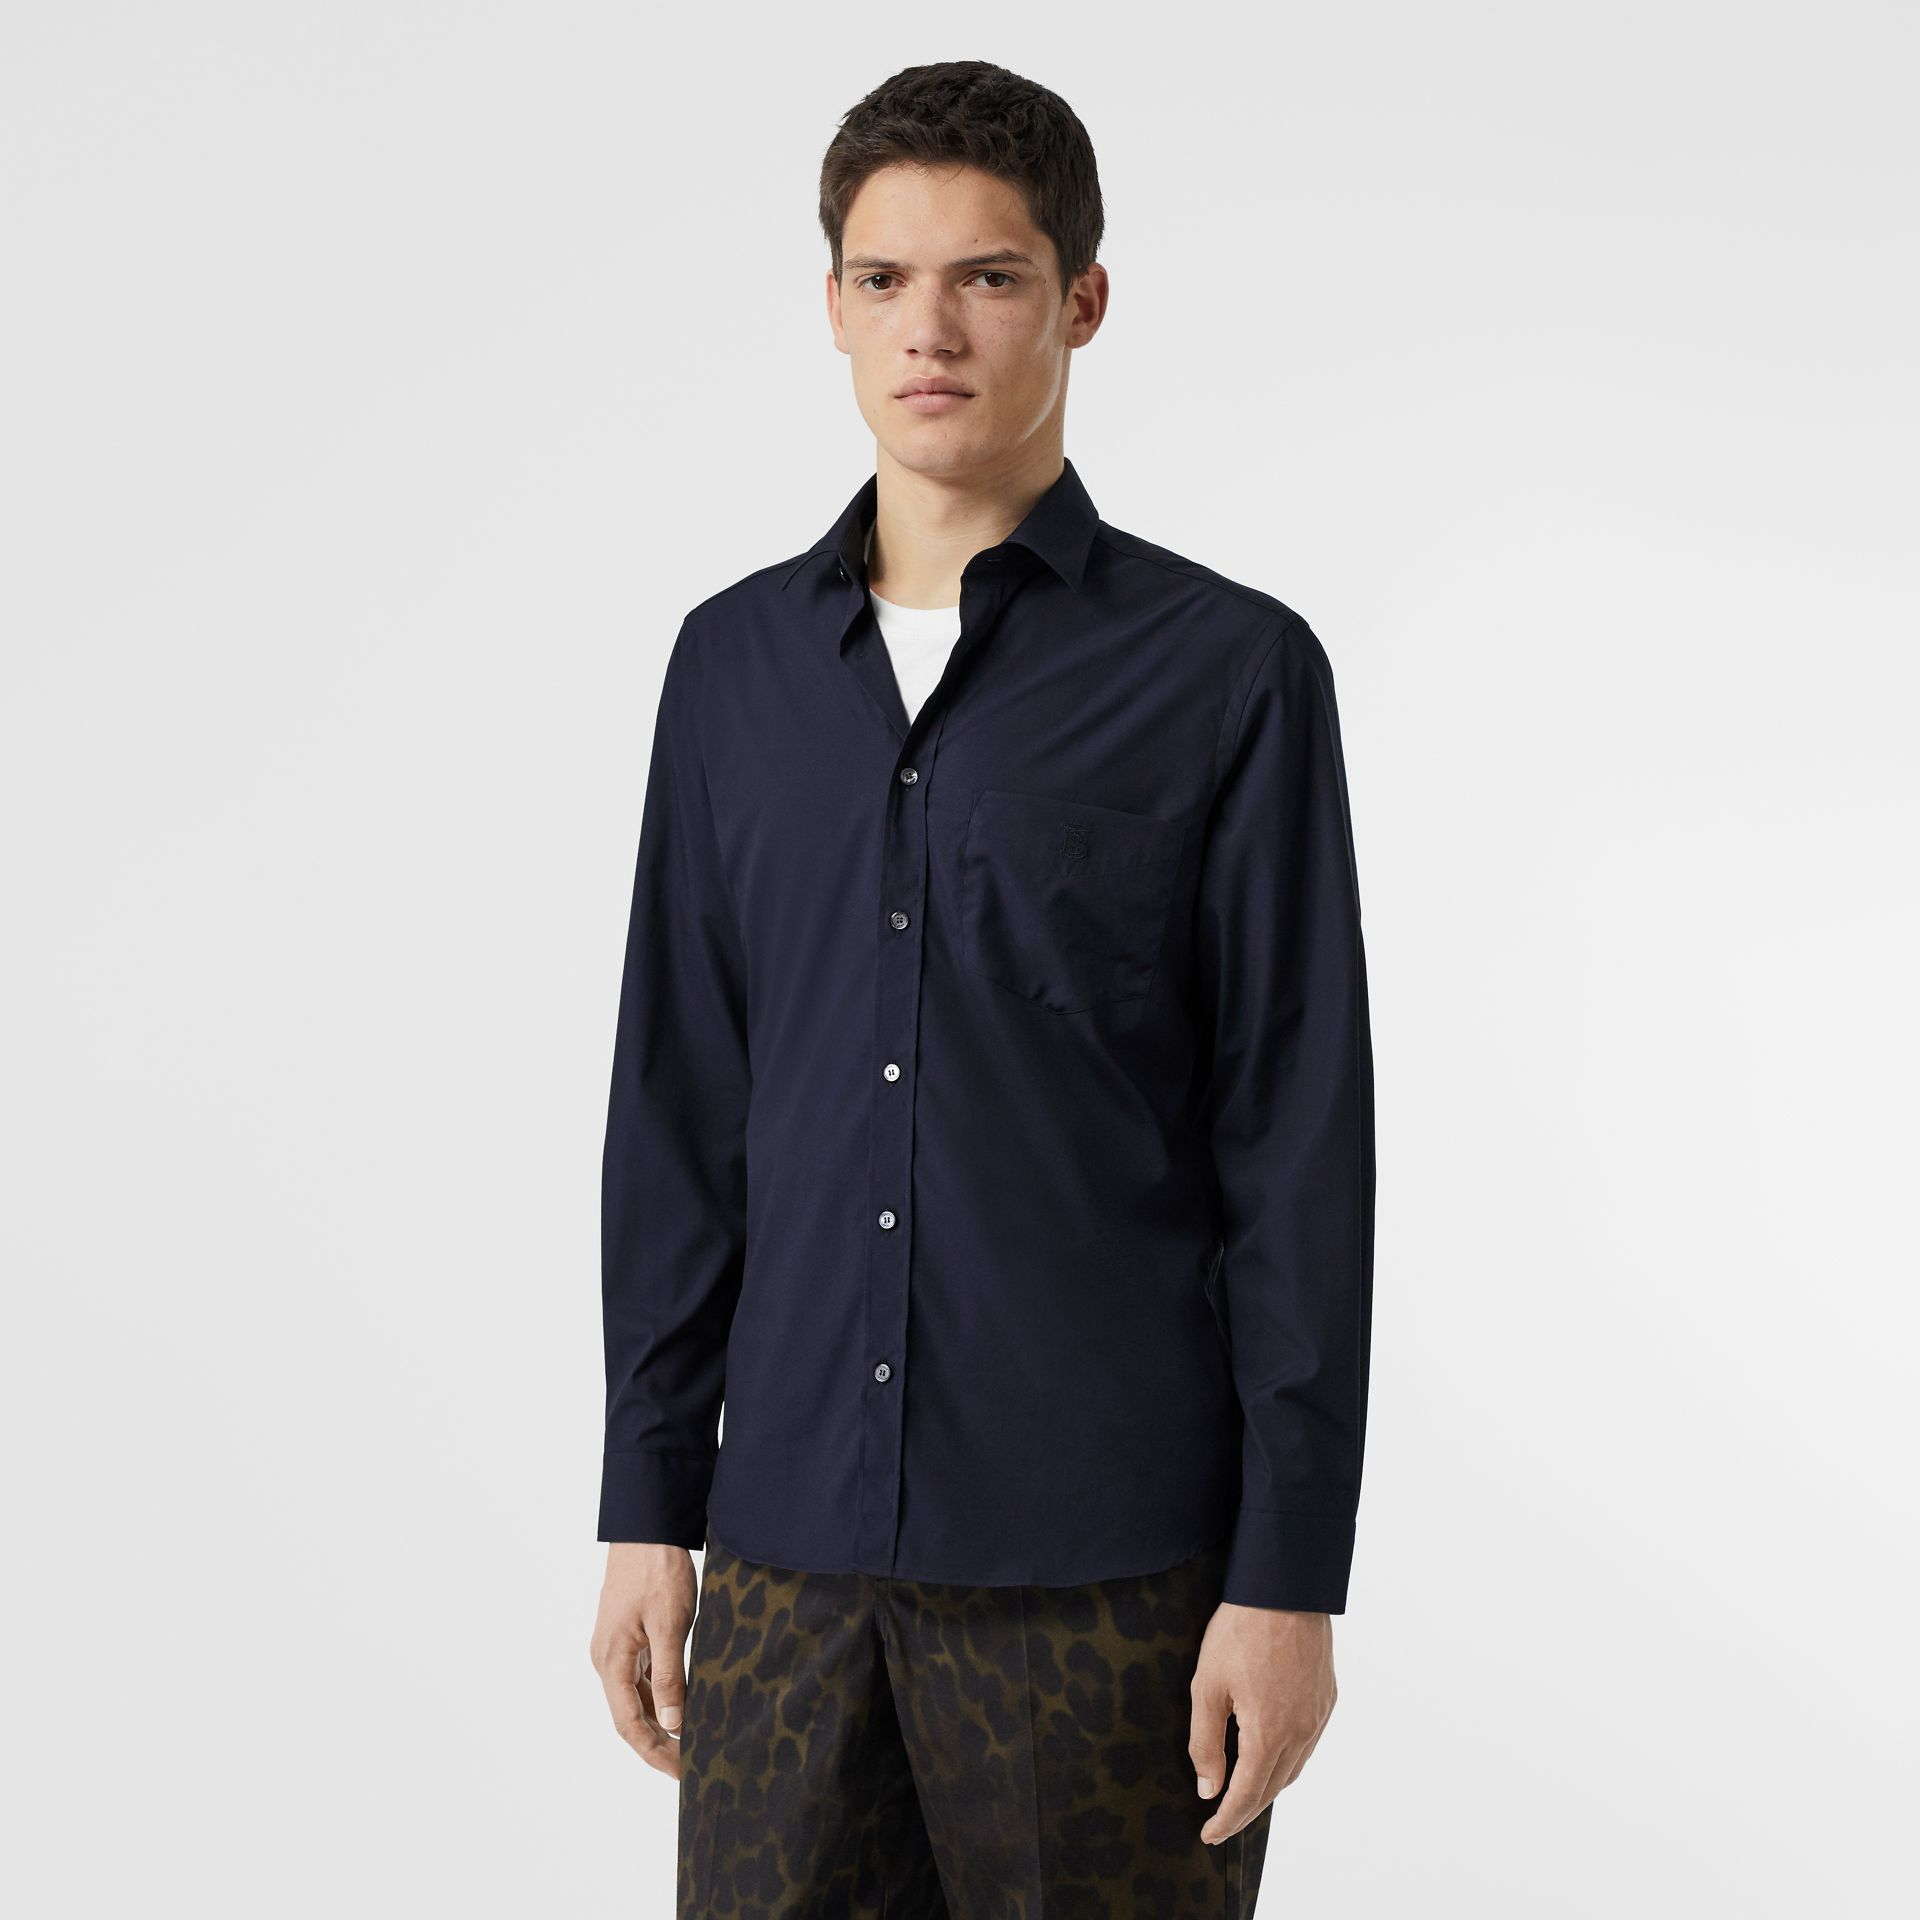 Monogram Motif Stretch Cotton Poplin Shirt in Navy - Men | Burberry - gallery image 4